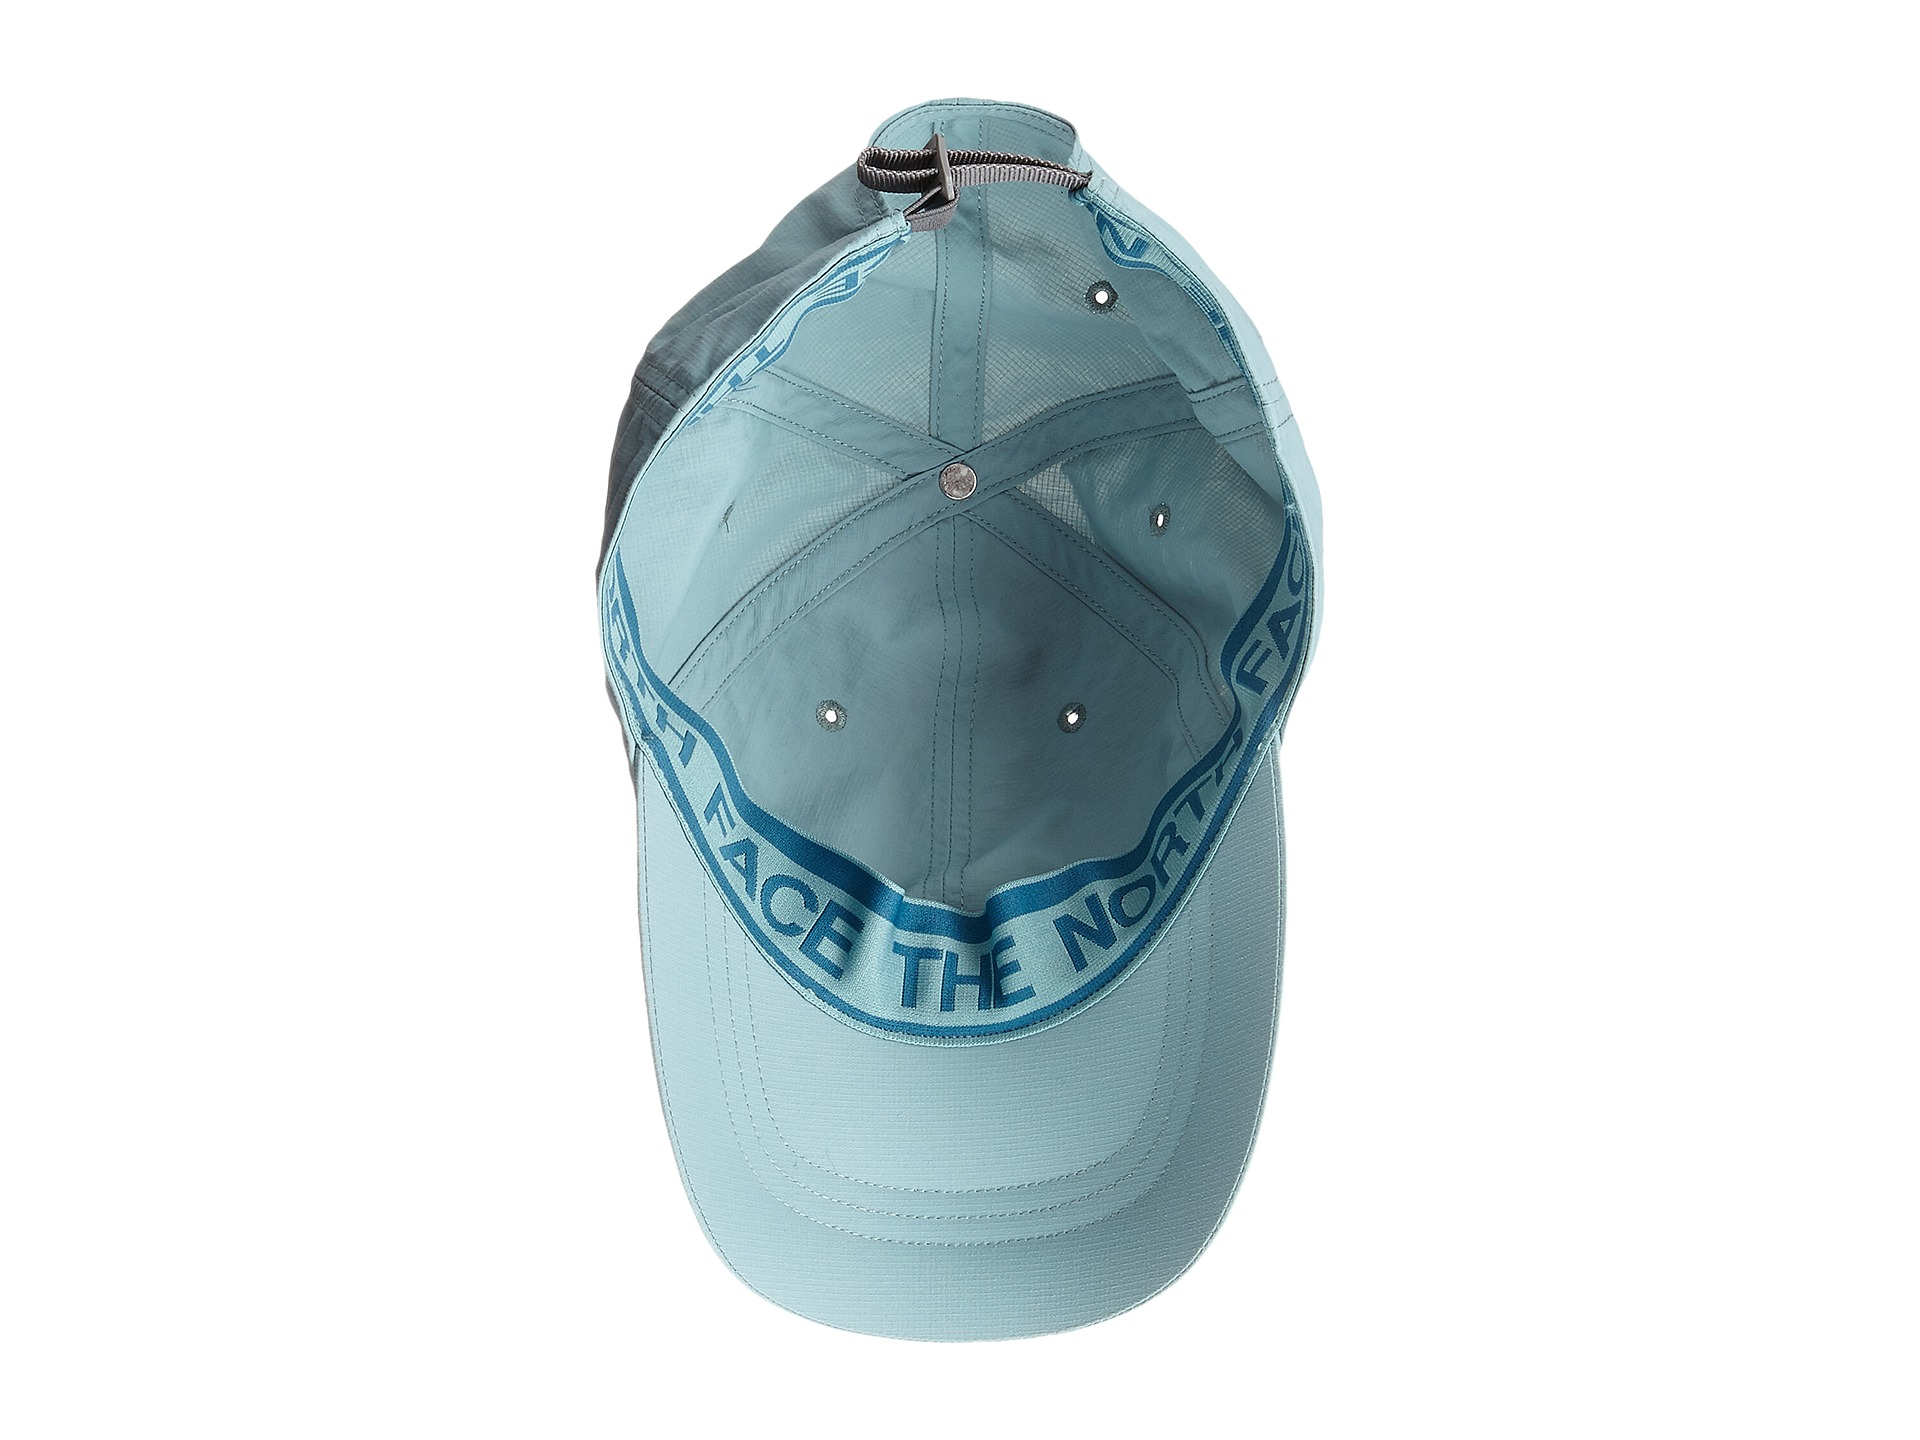 Lyst - The North Face Horizon Ball Cap in Blue 671aa64a85d